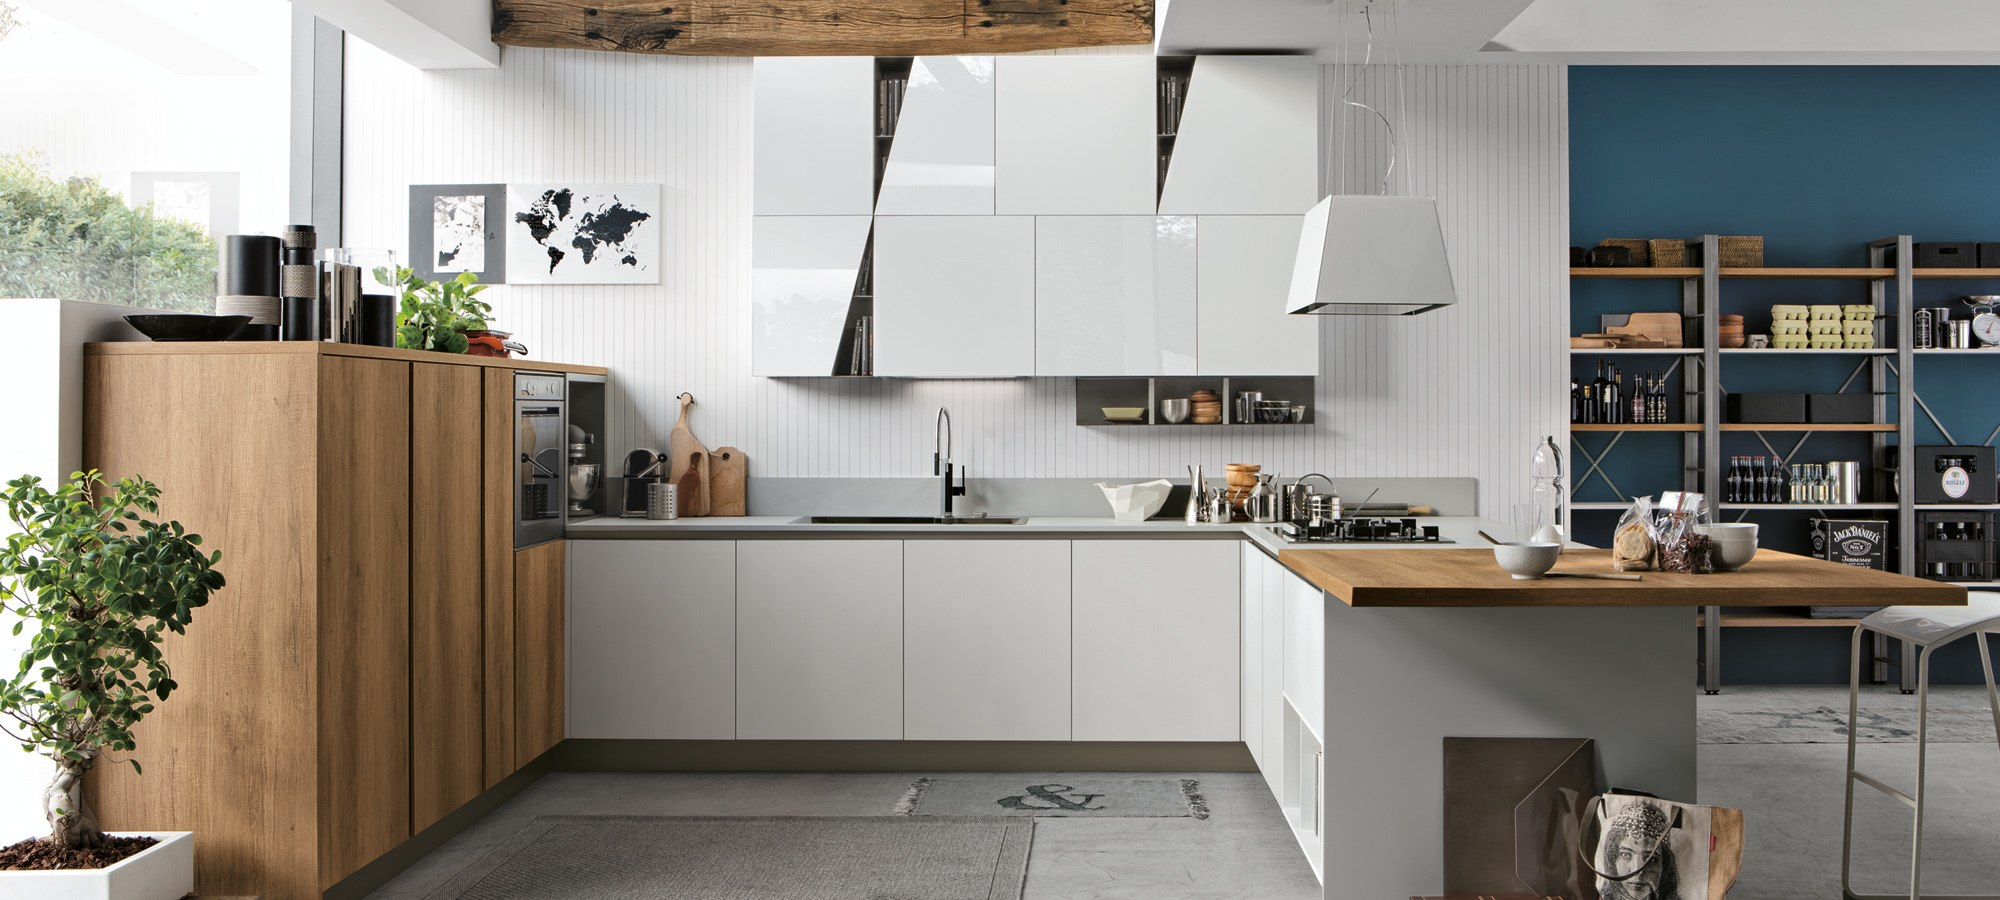 Stosa Cucine - Home Design E Interior Ideas - Refoias.net